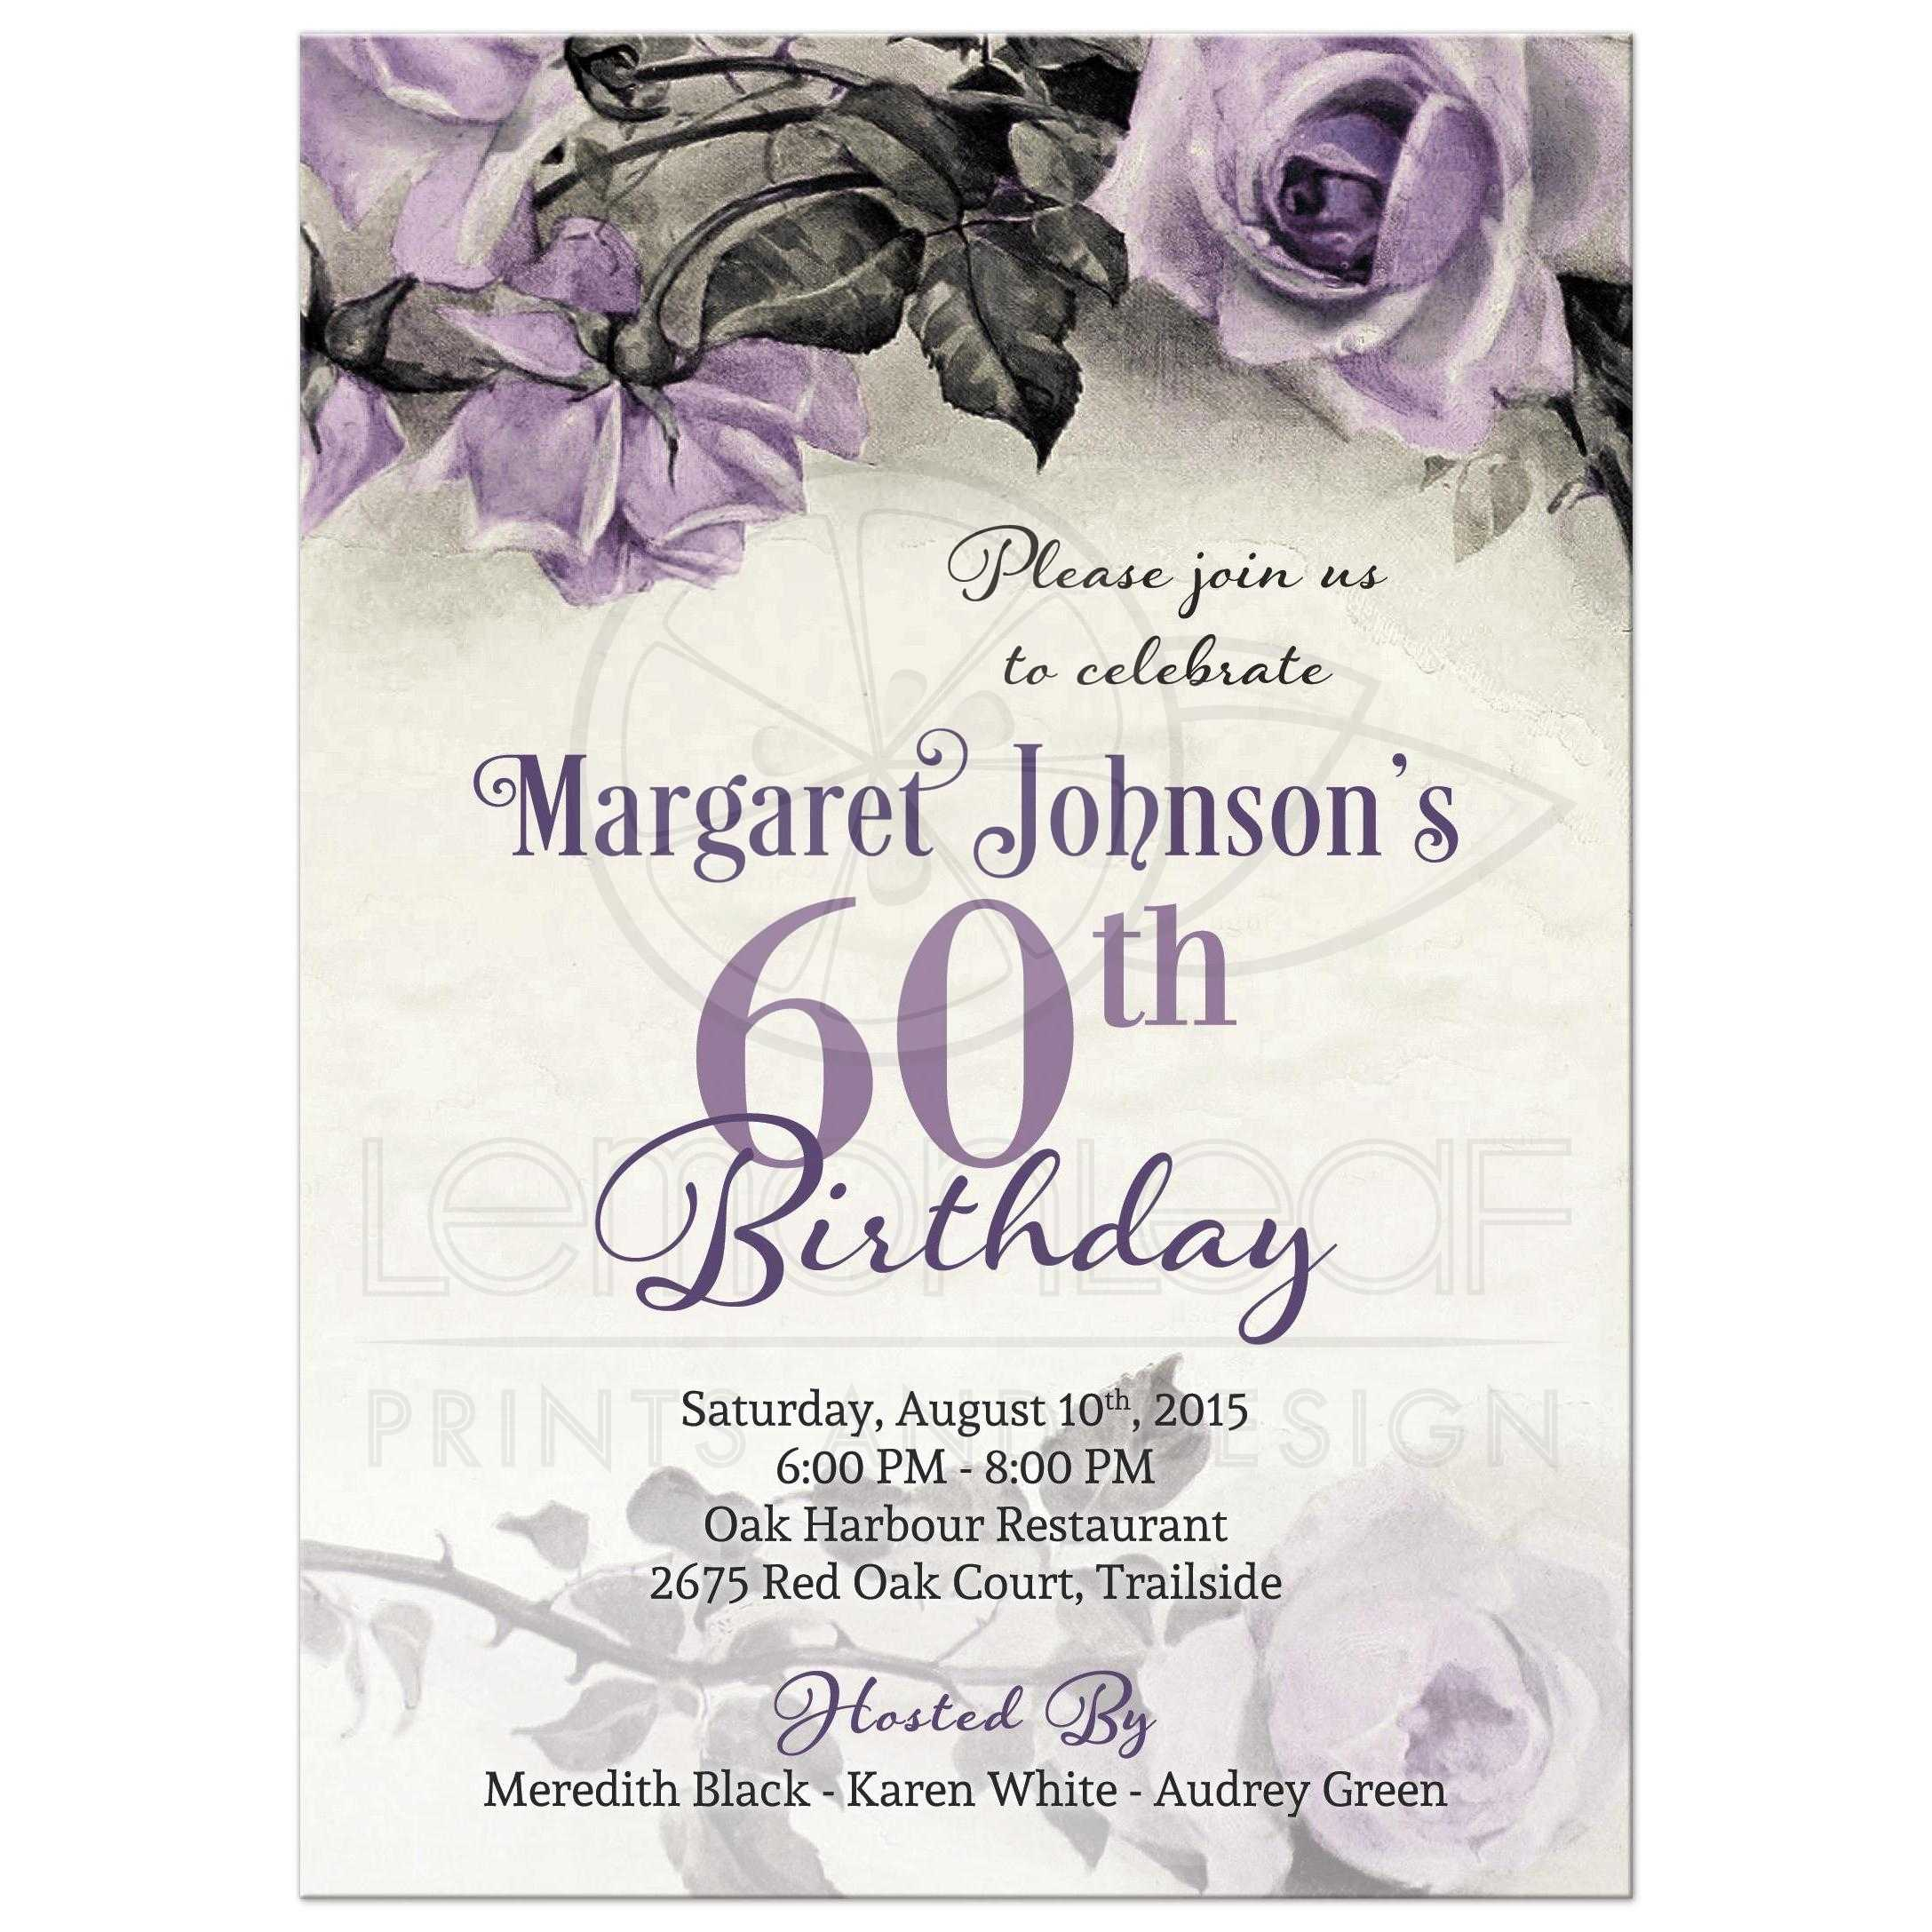 60th birthday invitation vintage purple sterling silver rose